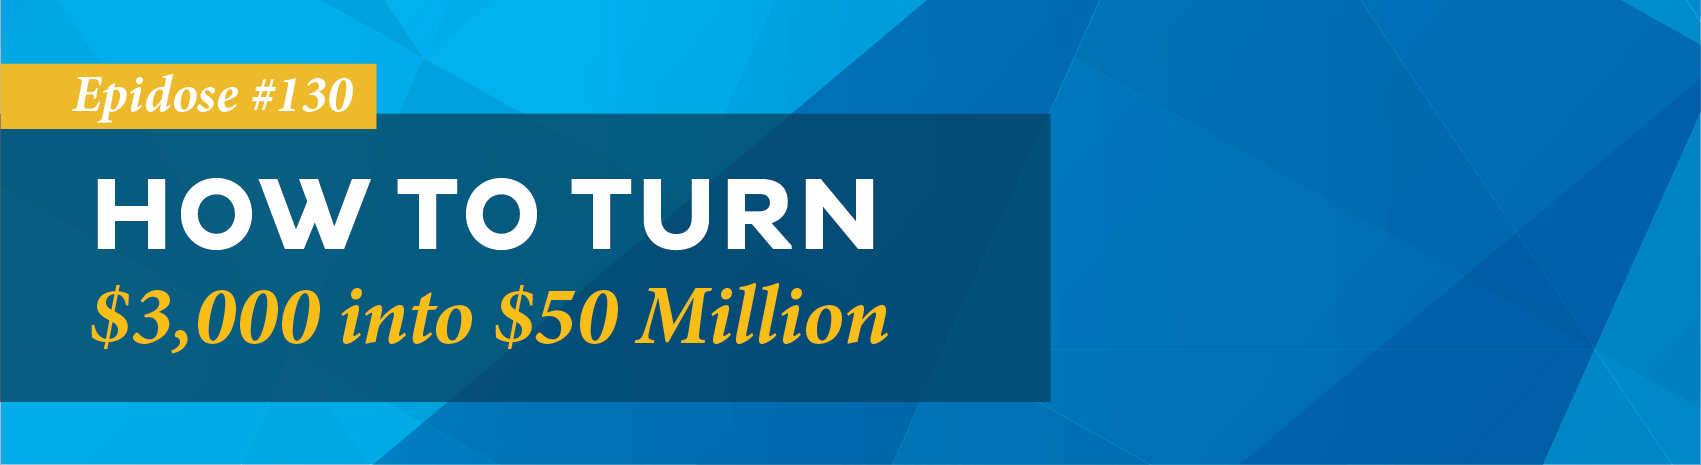 How to turn $3,000 into $50 million